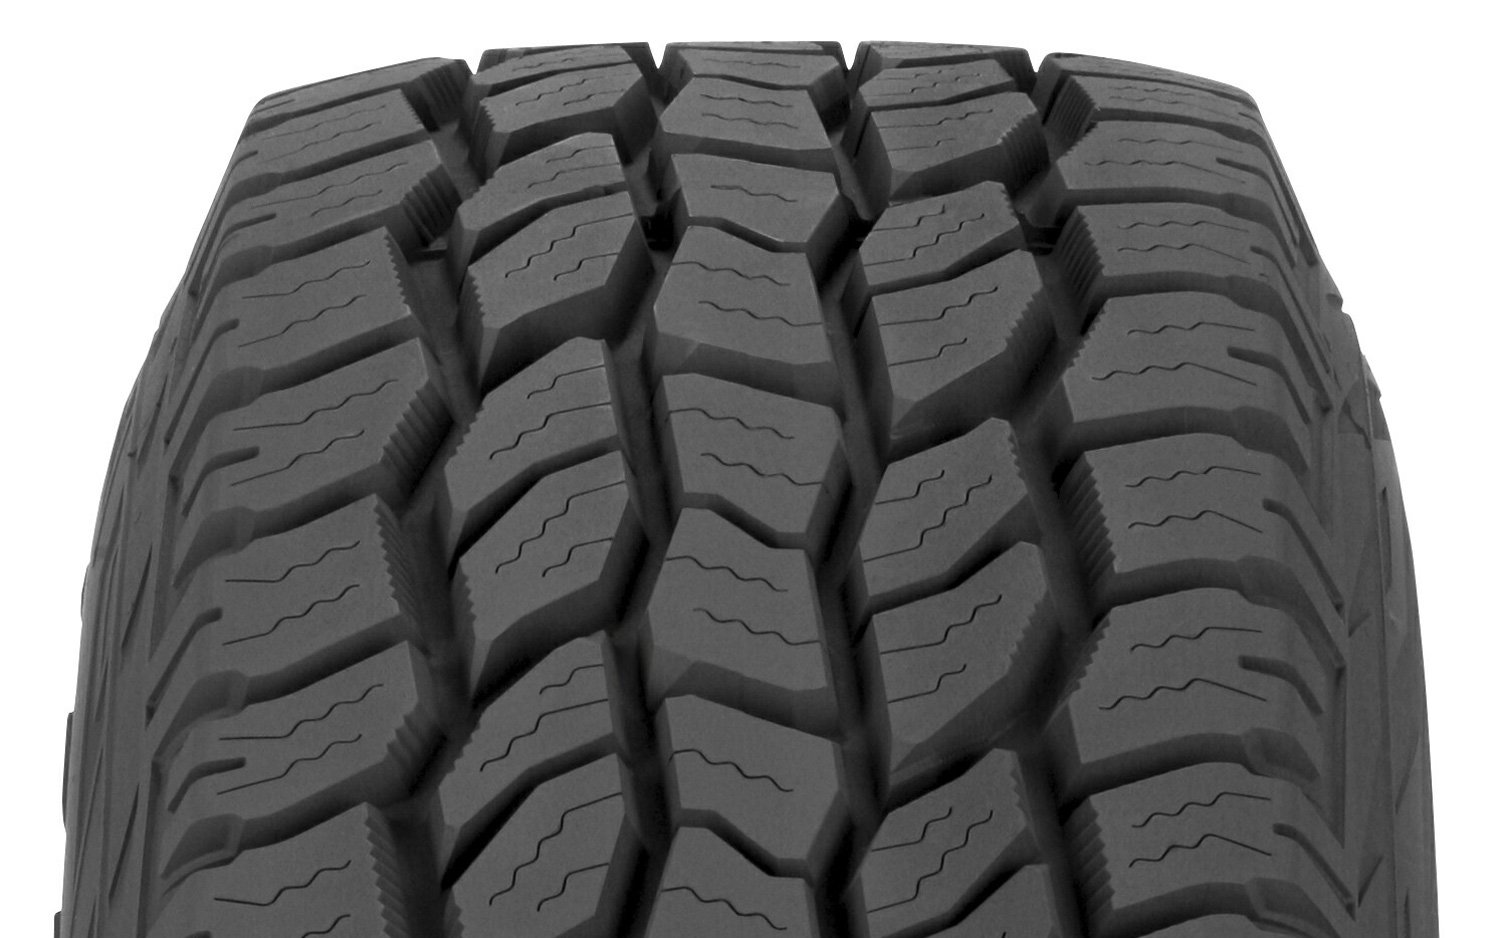 Cooper Discoverer A/T3 Radial Tire - 275/65R18 123S E1 by Cooper Tire (Image #3)